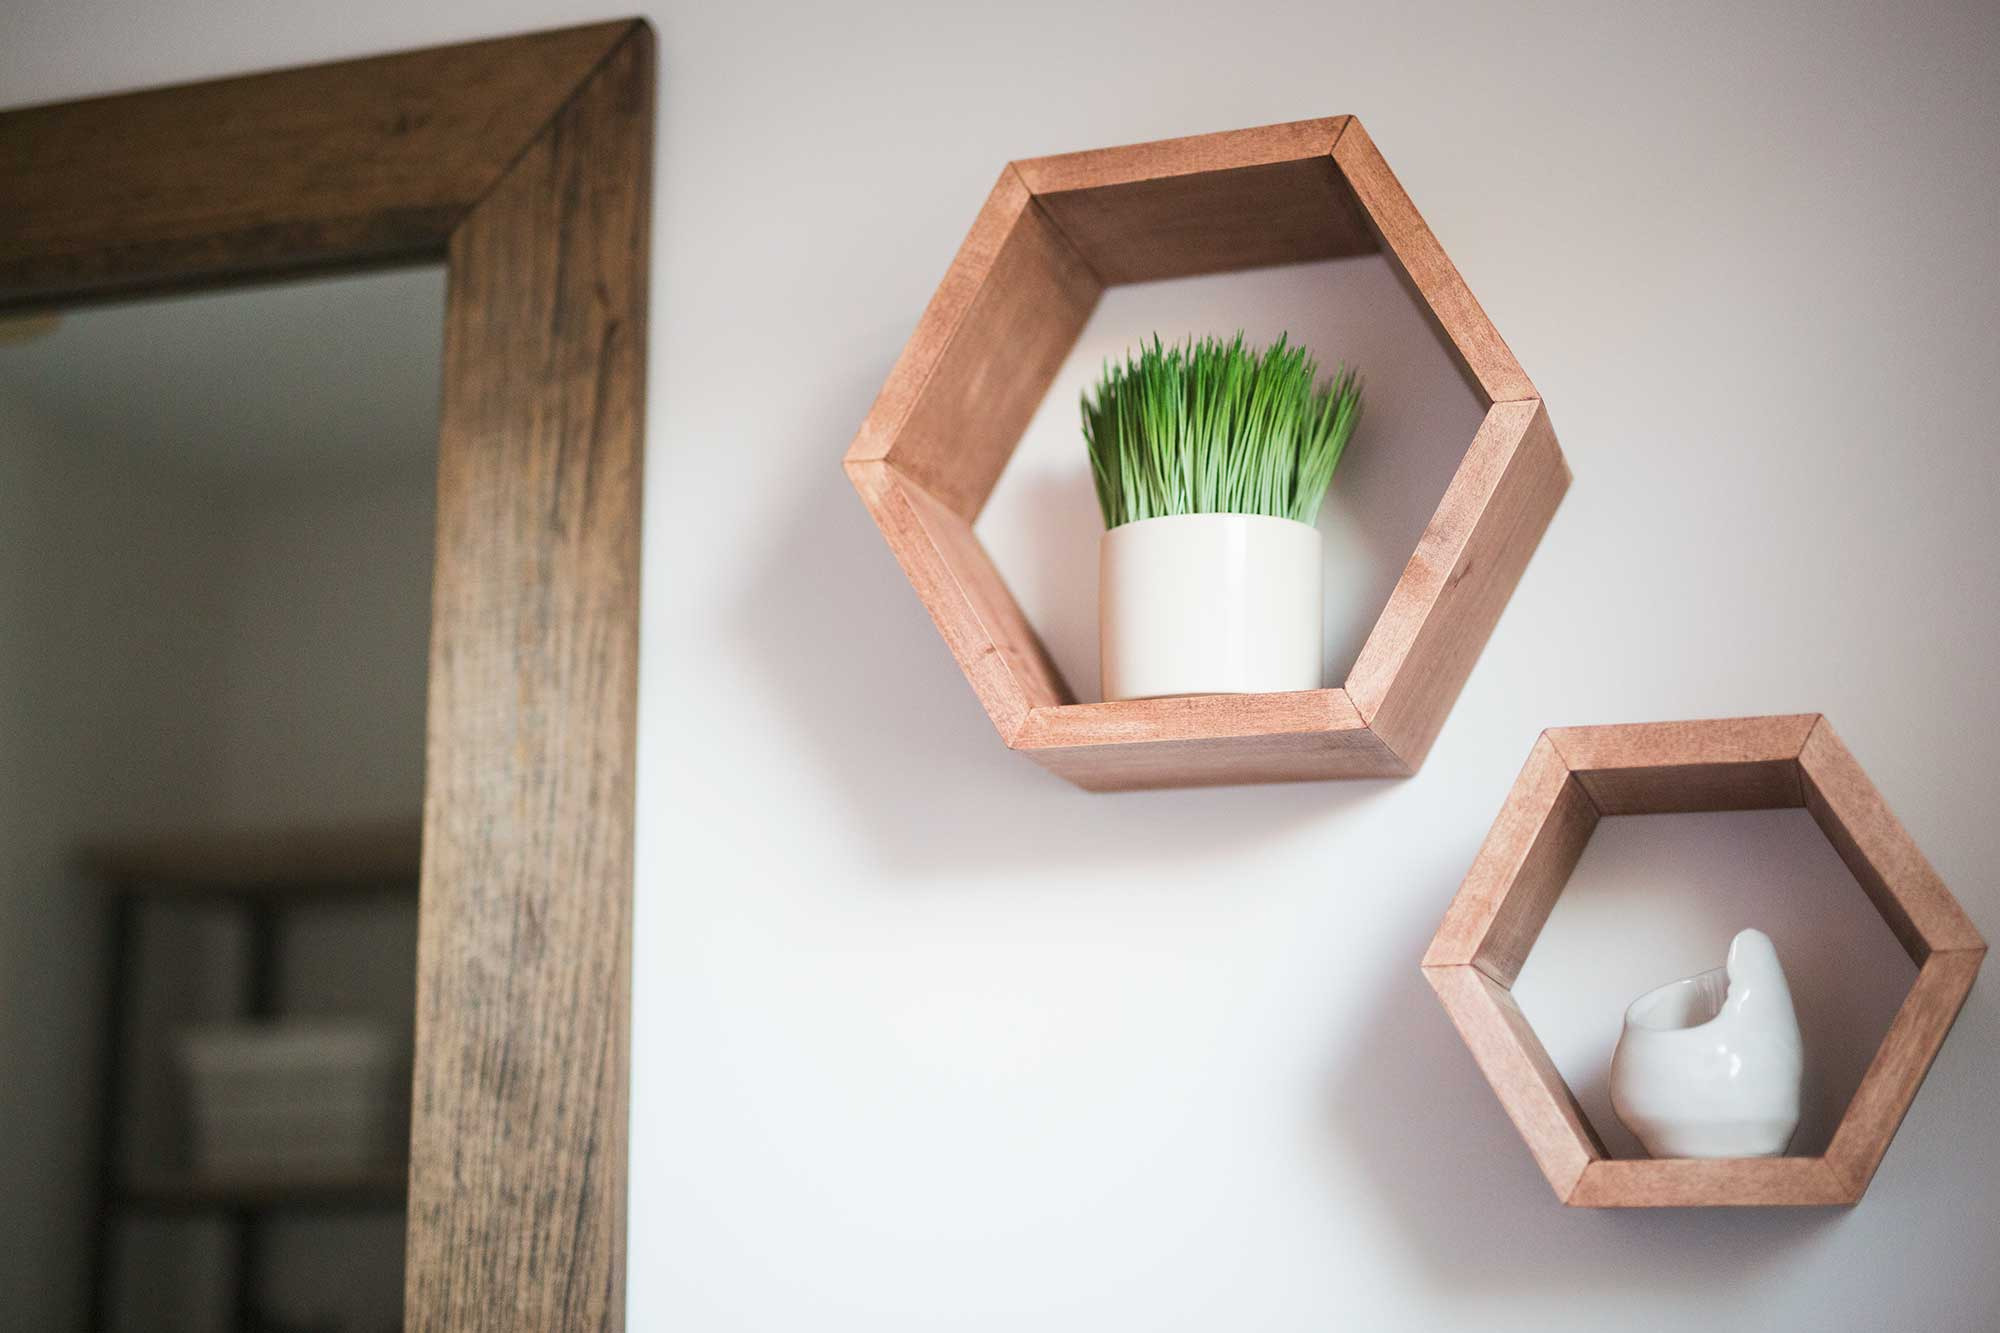 diy-hexigon-shelves